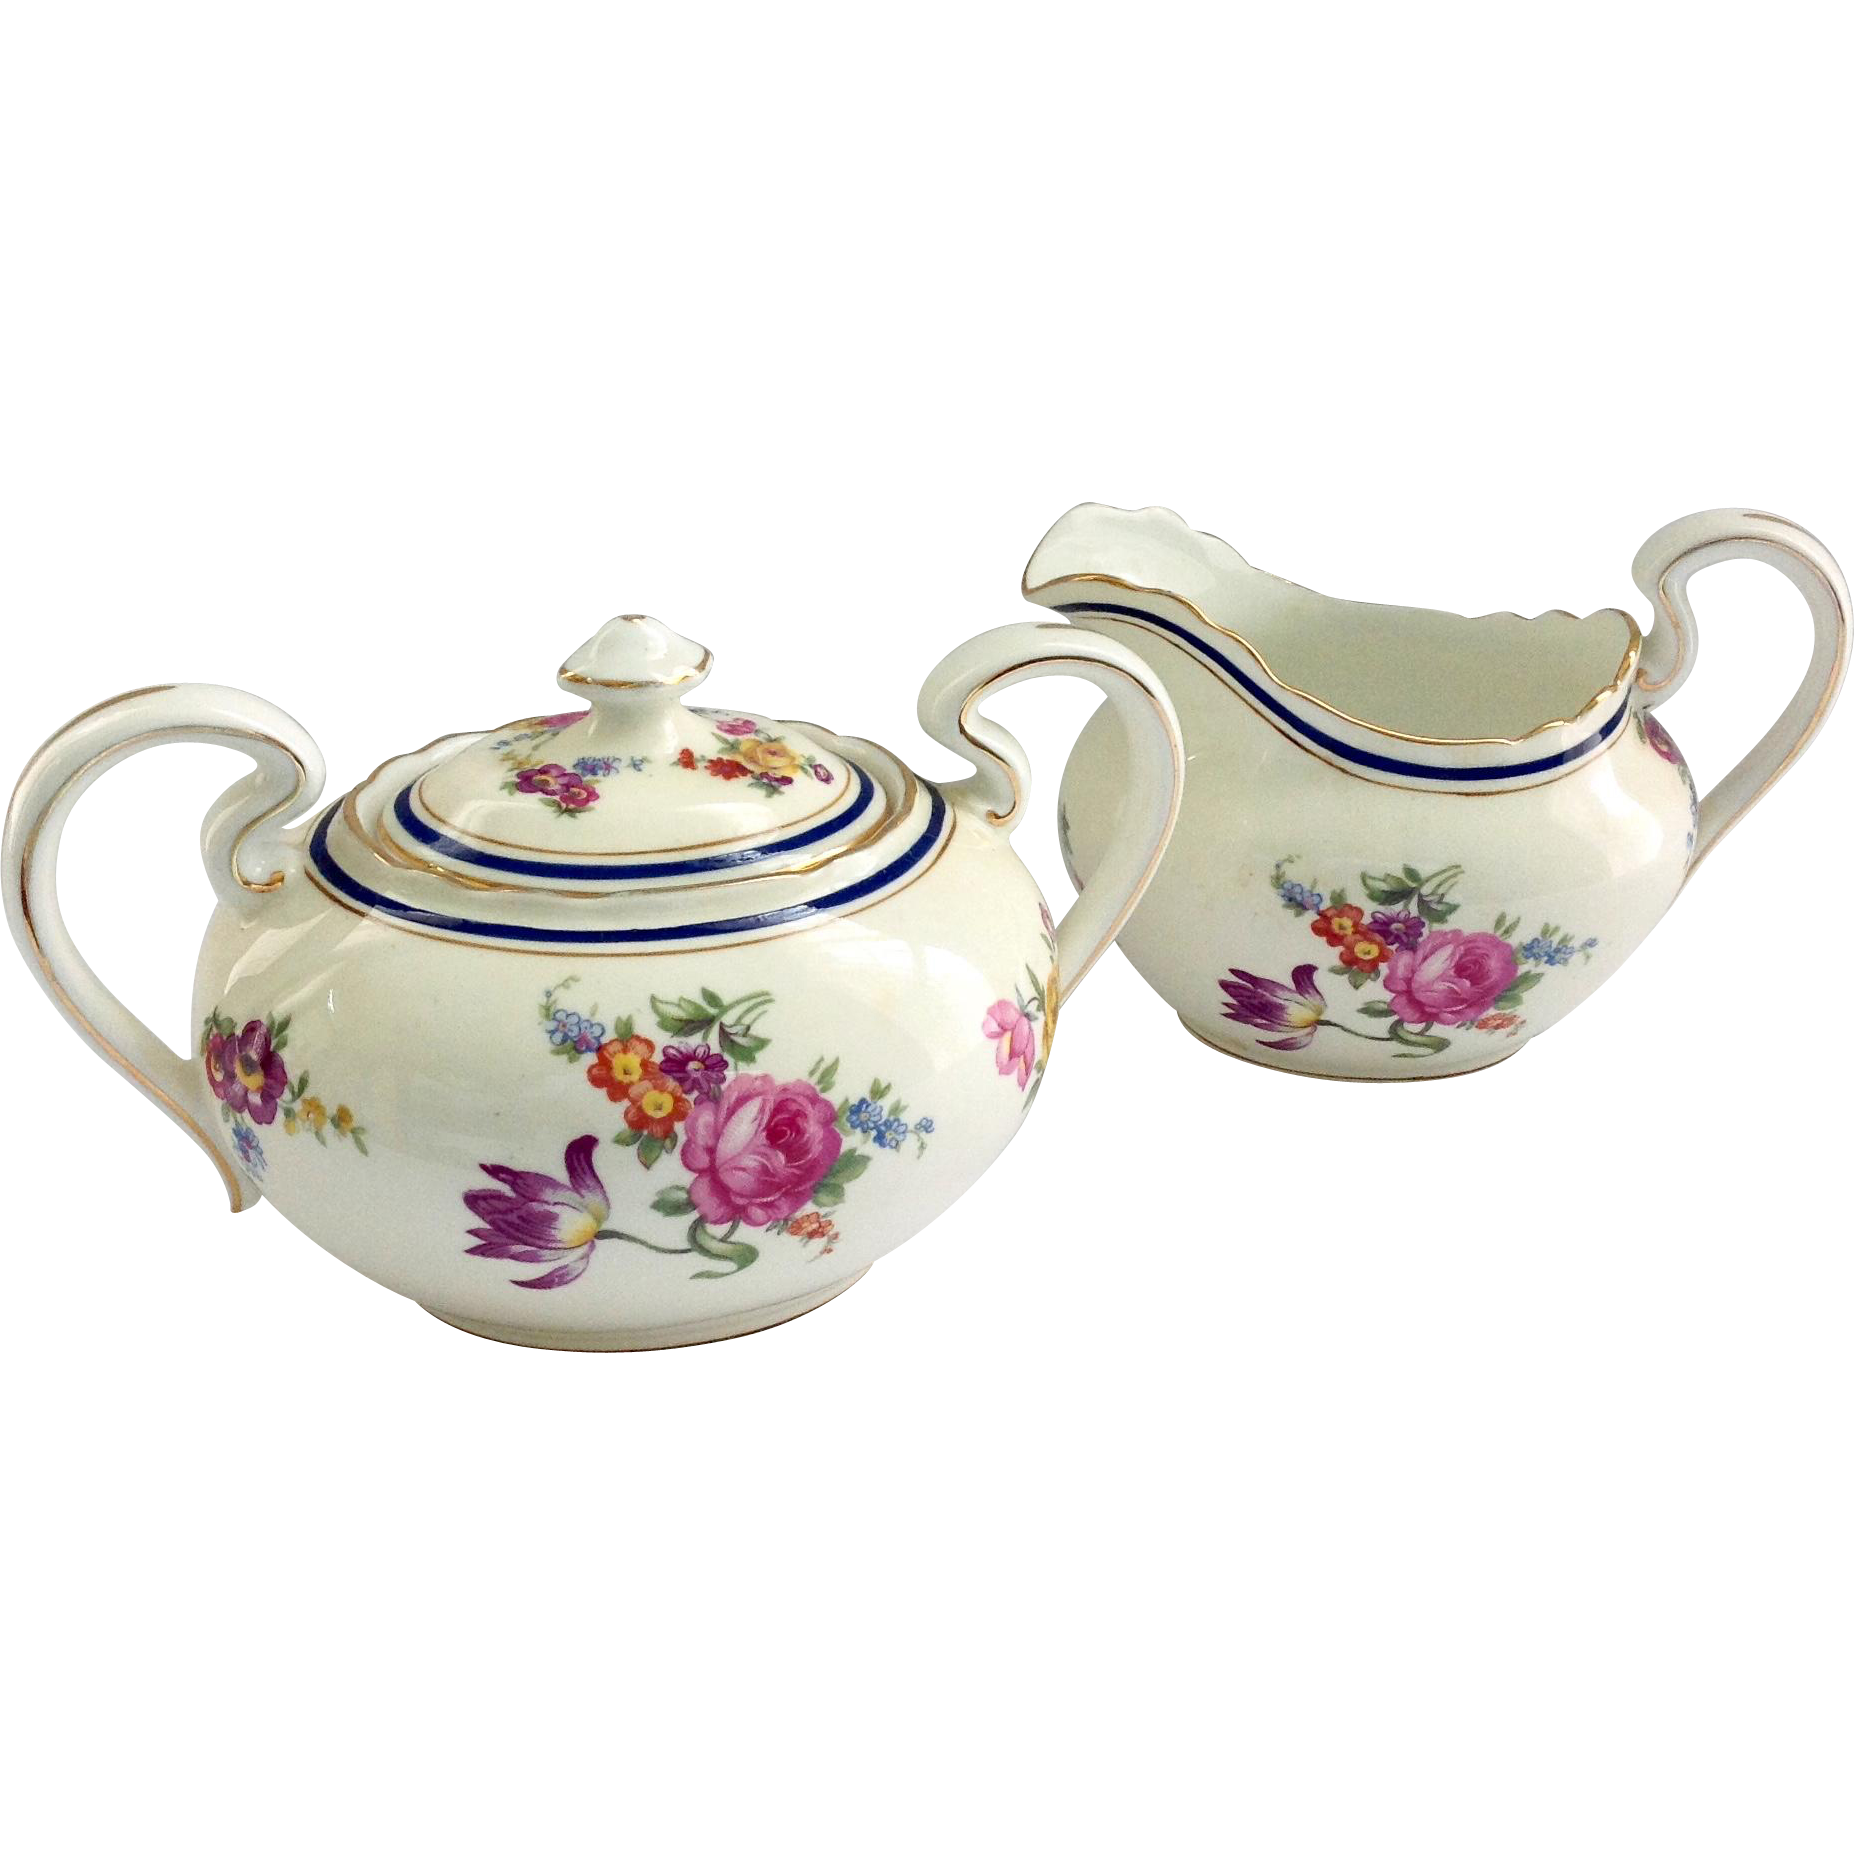 Aynsley Claridge Cobalt Band Bone China Creamer and Sugar